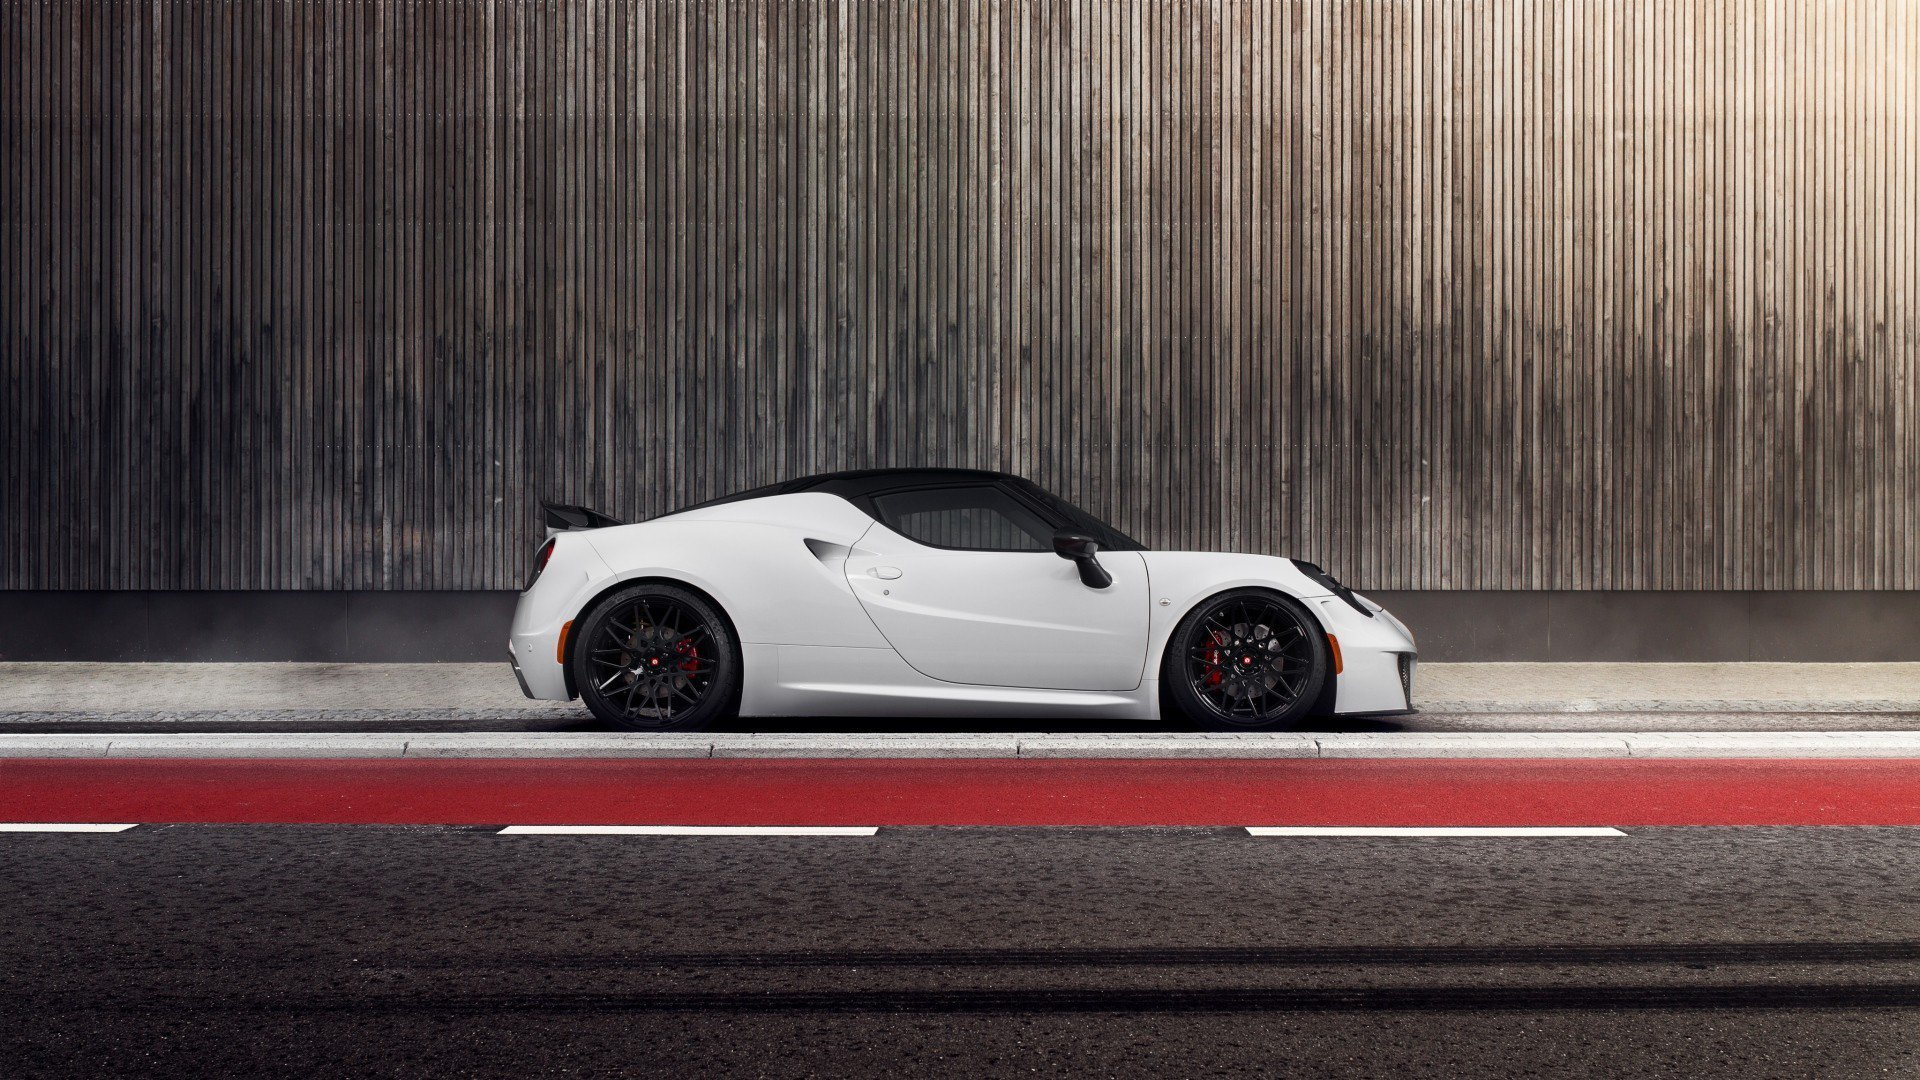 Latest Alfa Romeo 4C Hd Cars 4K Wallpapers Images Backgrounds Free Download